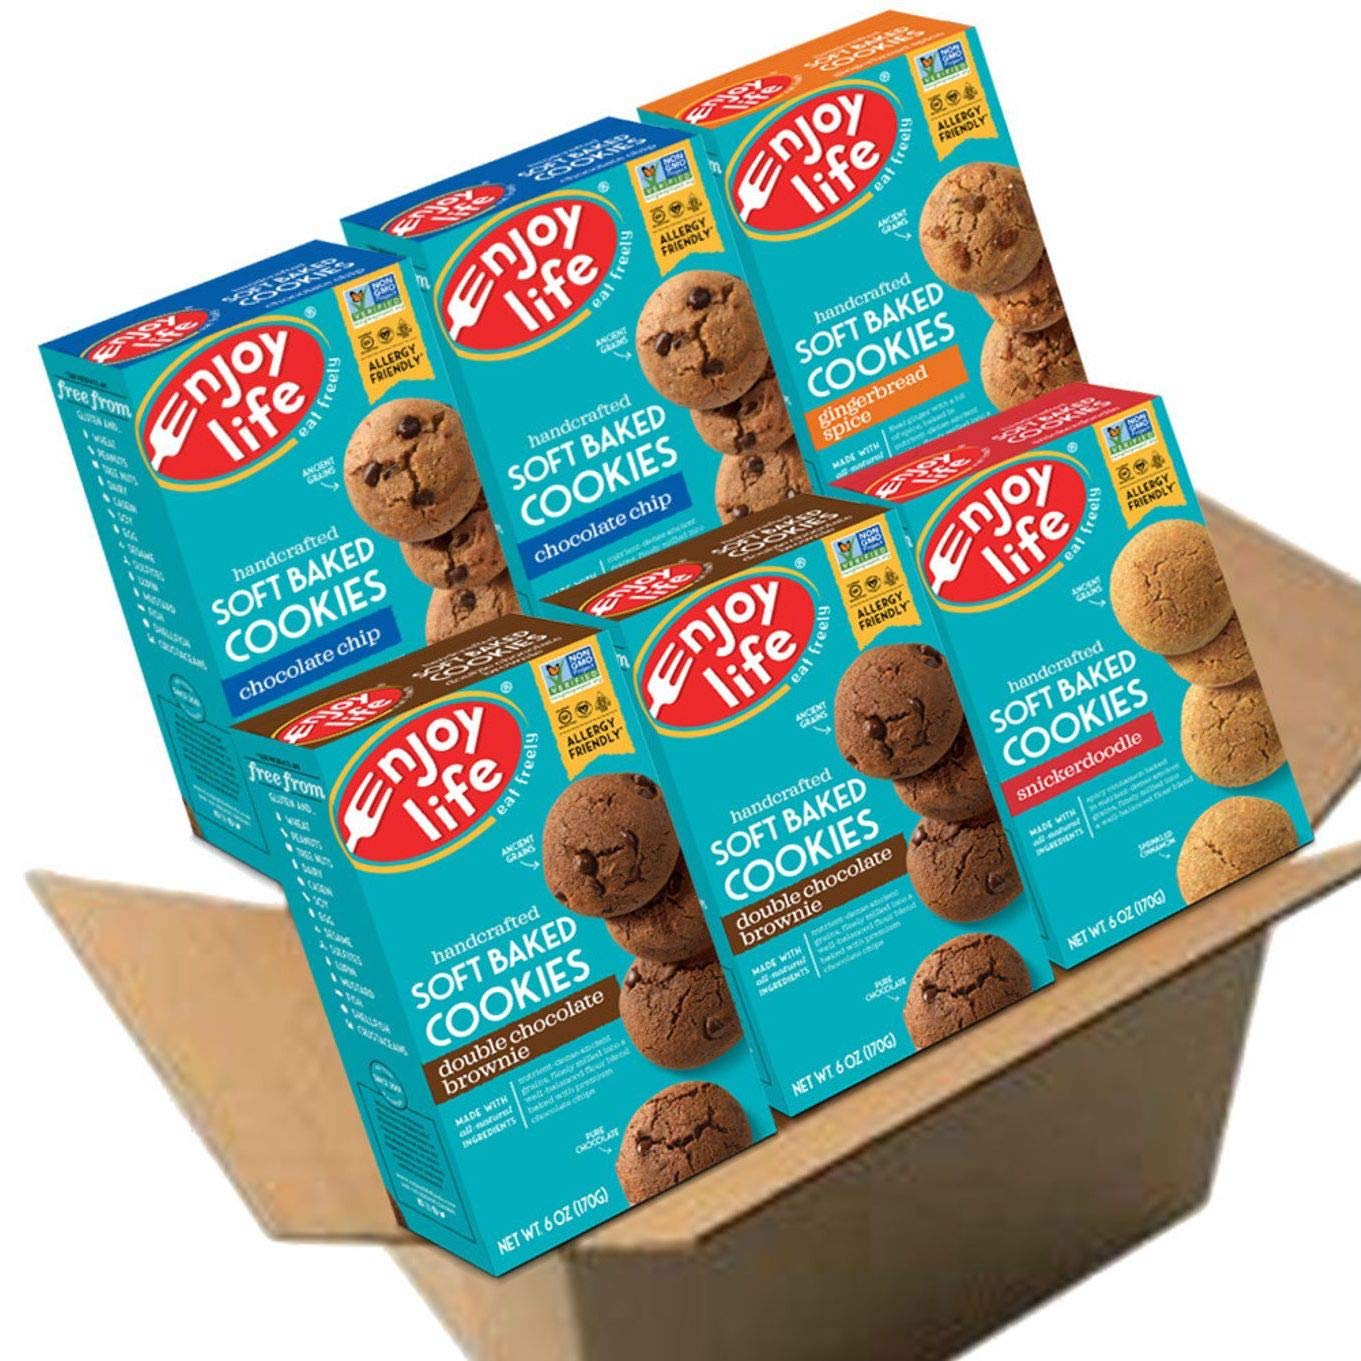 Enjoy Life Soft Baked Cookies, Soy free, Nut free, Gluten free, Dairy free, Non GMO, Vegan, Variety Pack (Chocolate Chip, Double Chocolate Brownie, Snickerdoodle, Gingerbread Spice), 6 Boxes by Enjoy Life Foods